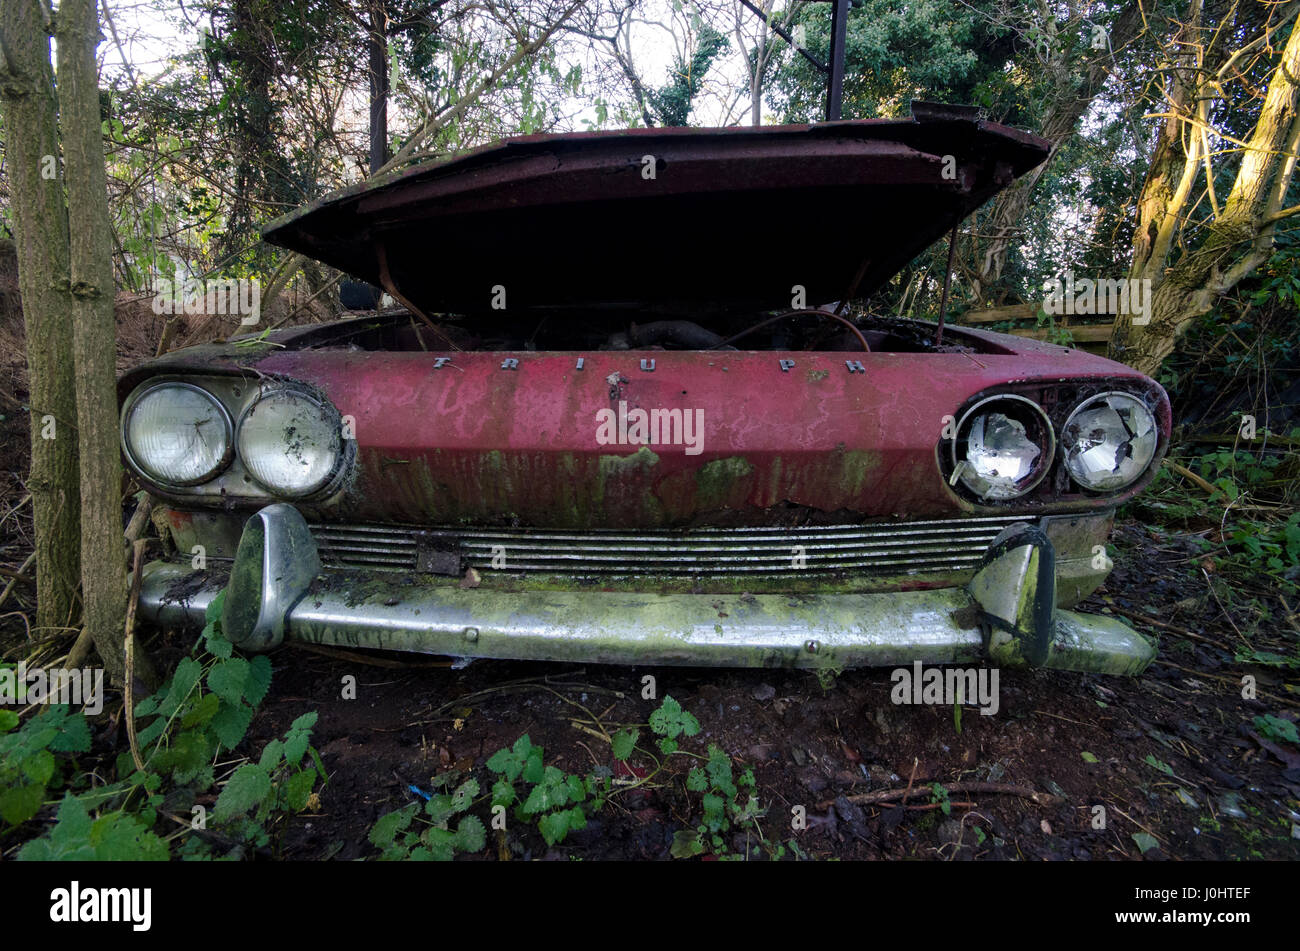 Abandoned car - Stock Image